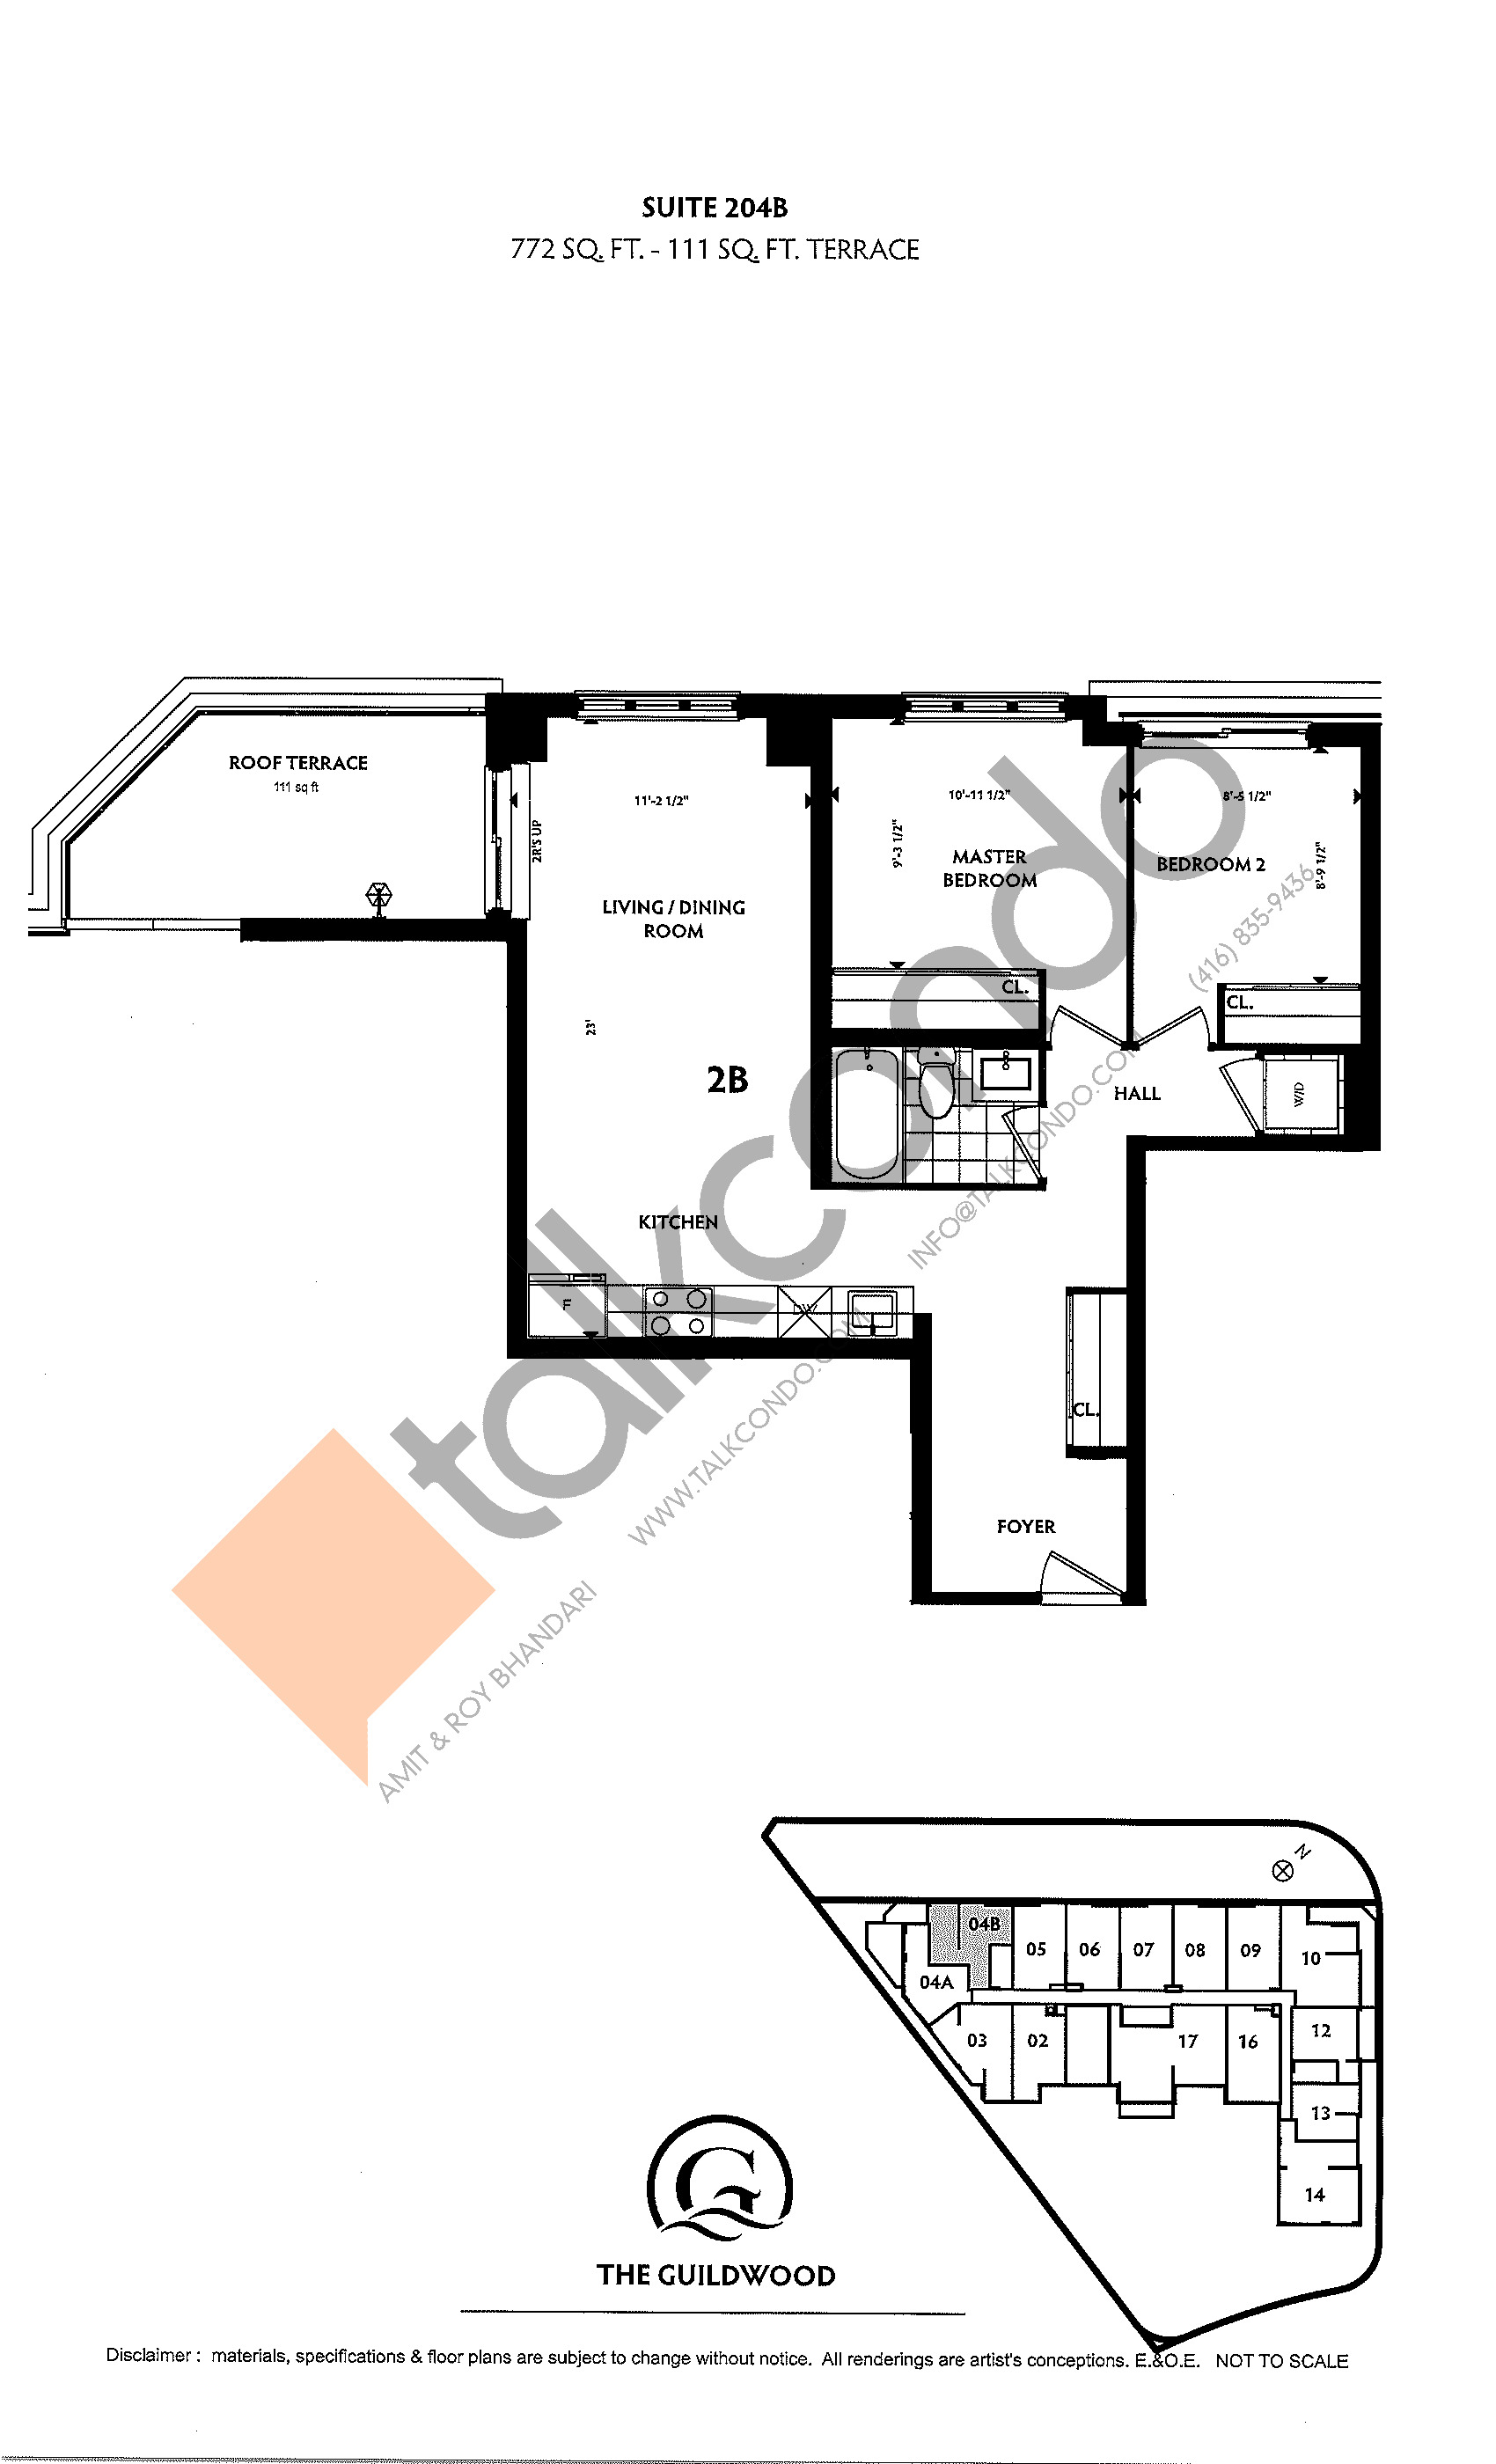 Suite 204B Floor Plan at Guildwood Condos - 772 sq.ft